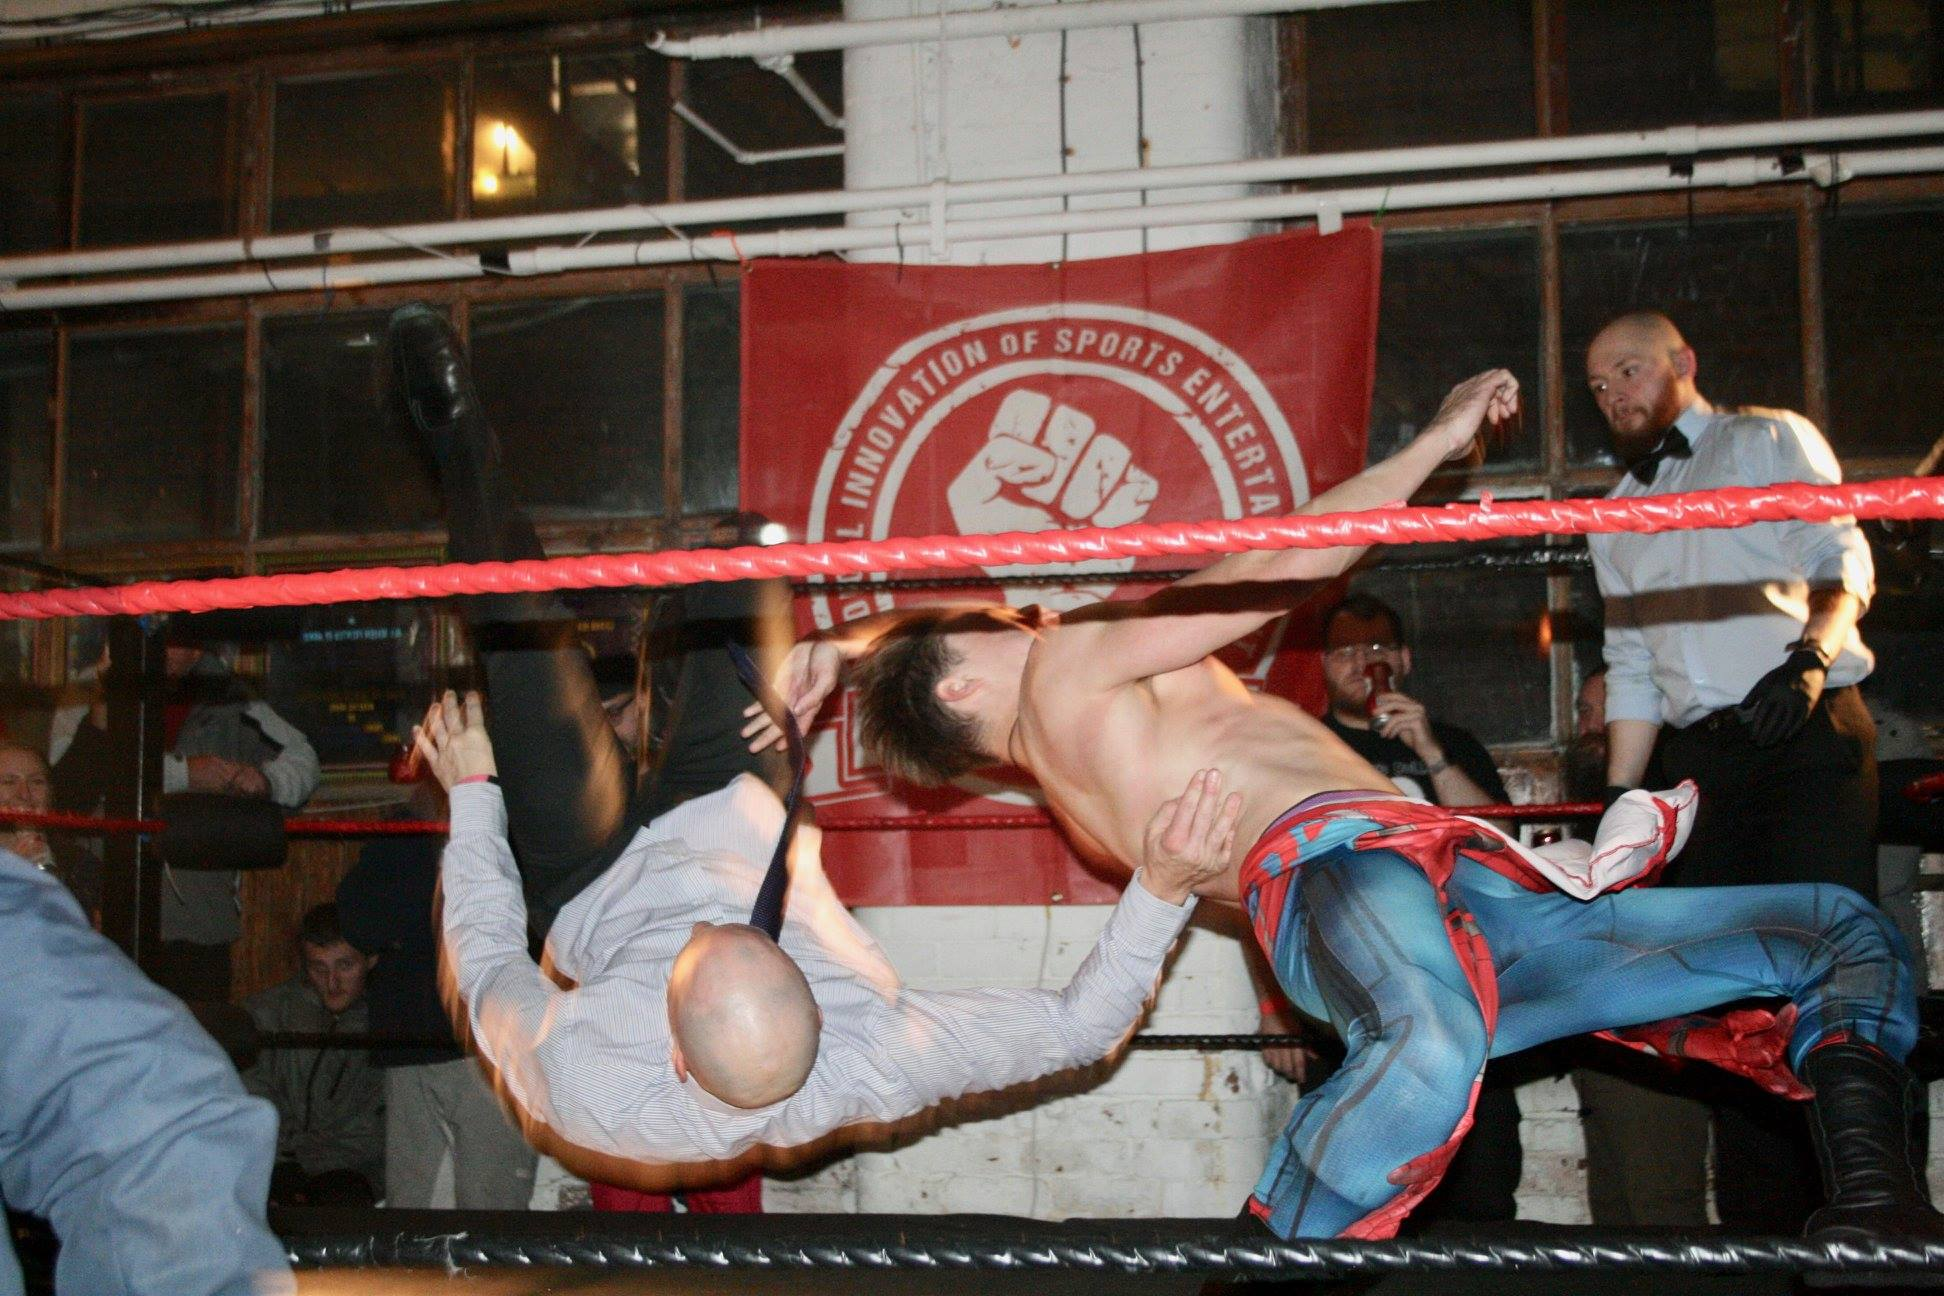 Holy SH*T: A Beginner's Guide to Underground Pro Wrestling